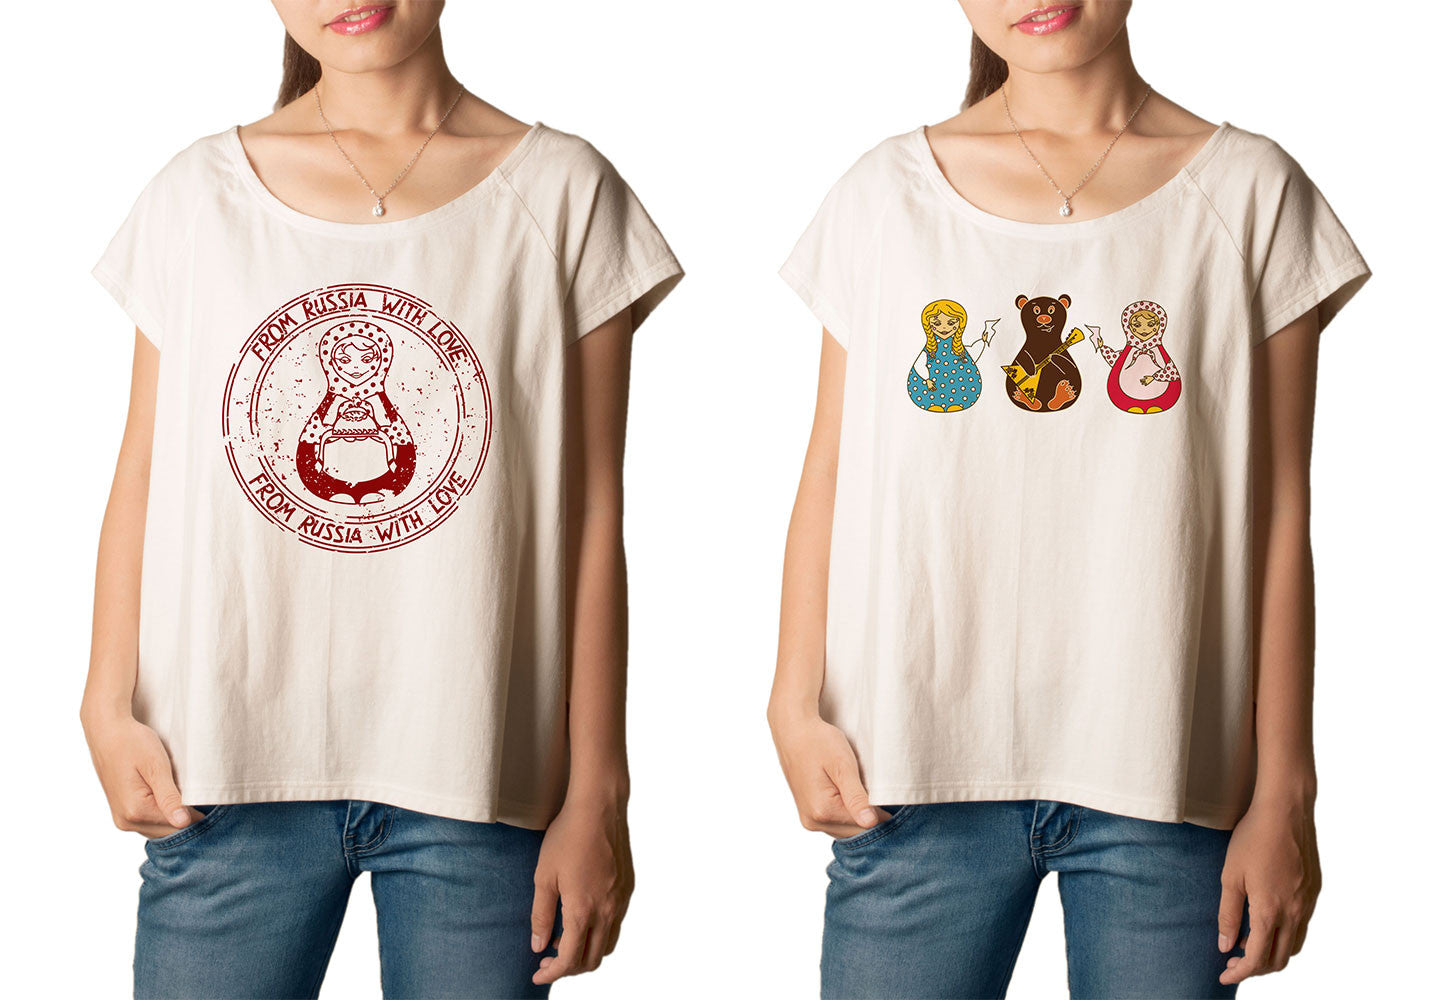 Women's Russian Dolls Printed cotton T-shirt  Tee WTS_01